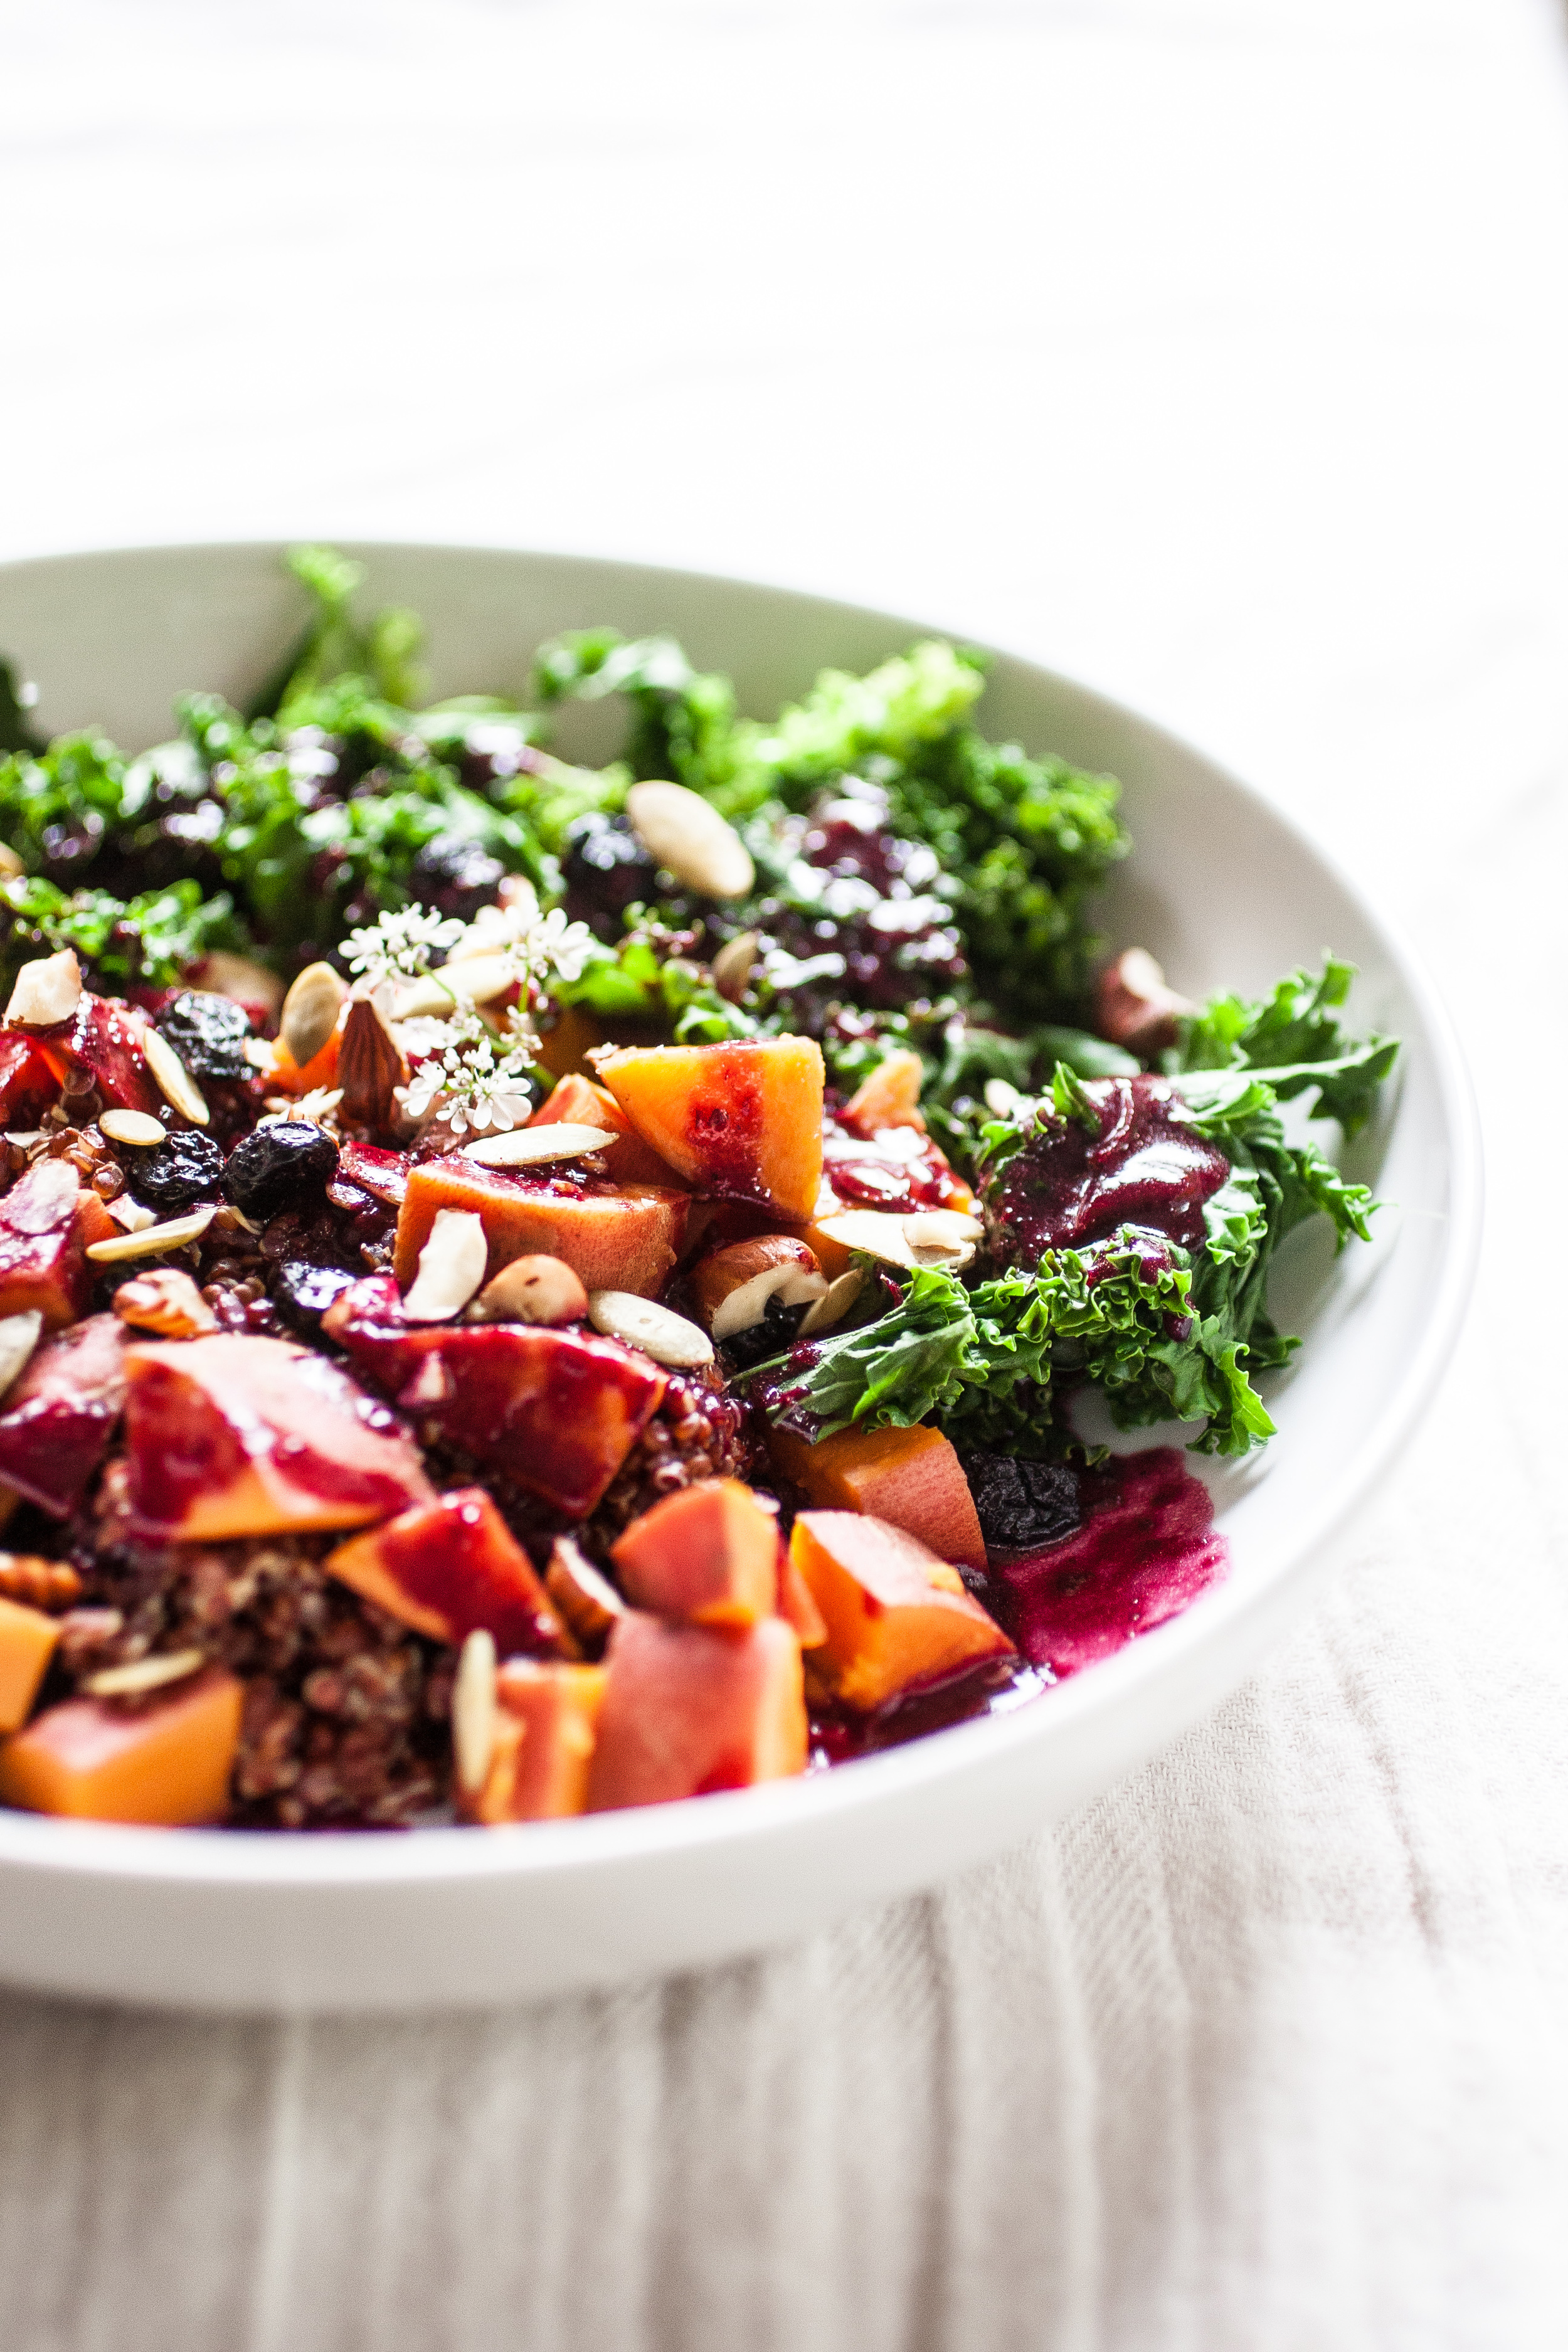 Produce On Parade - Sweet Potato & Blueberry Forest Bowl - An easy and incredibly healthy dinner. Nuts, seeds, and dried berries adorn sweet potato, quinoa, and kale that's drizzled with a homemade blueberry vinaigrette.